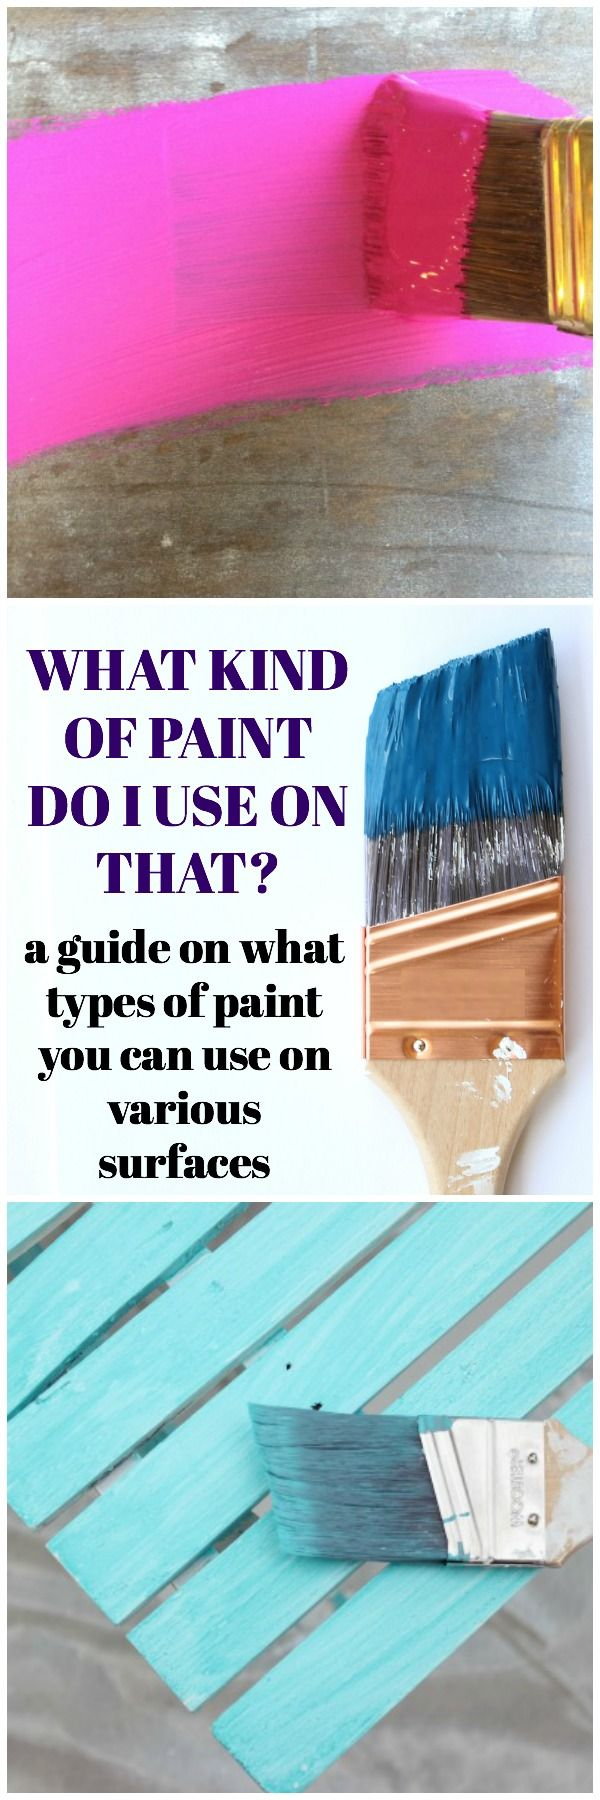 what kind of paint do i use on that? a guide to what kind of paint